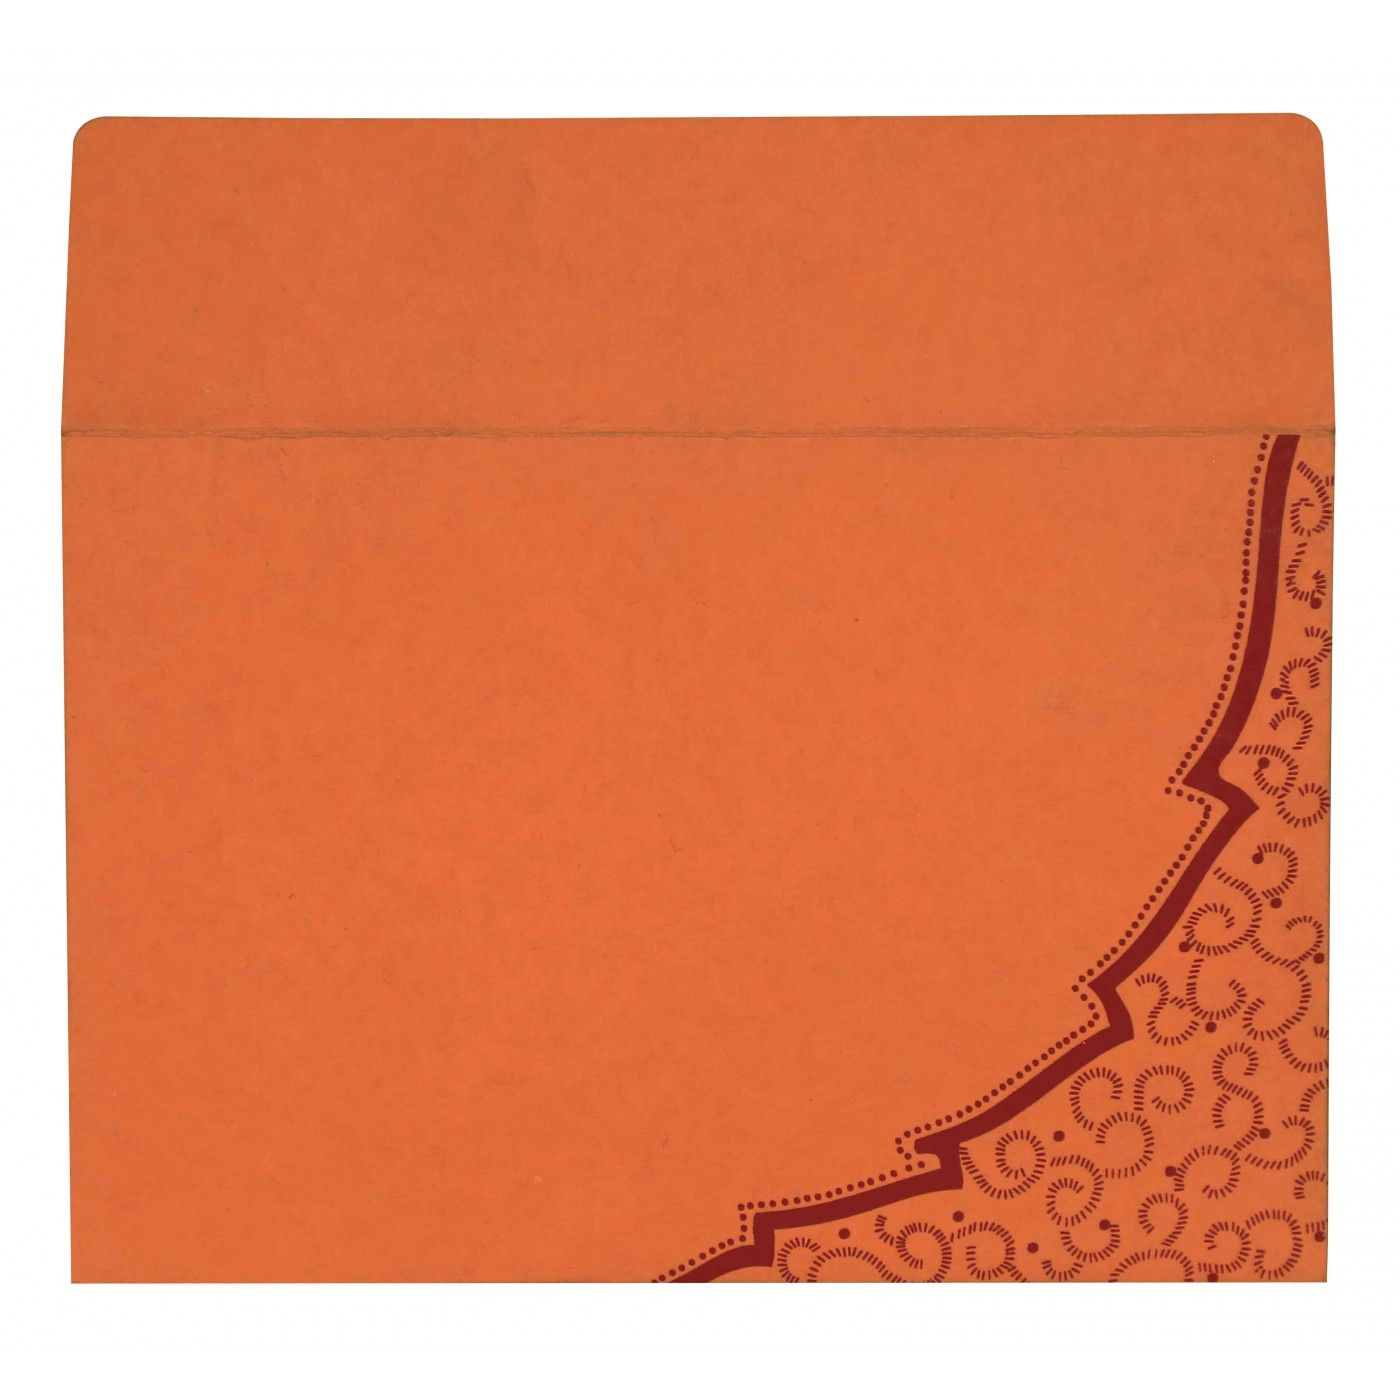 ORANGE HANDMADE COTTON FLORAL THEMED - FOIL STAMPED WEDDING CARD : CW-8219B - IndianWeddingCards